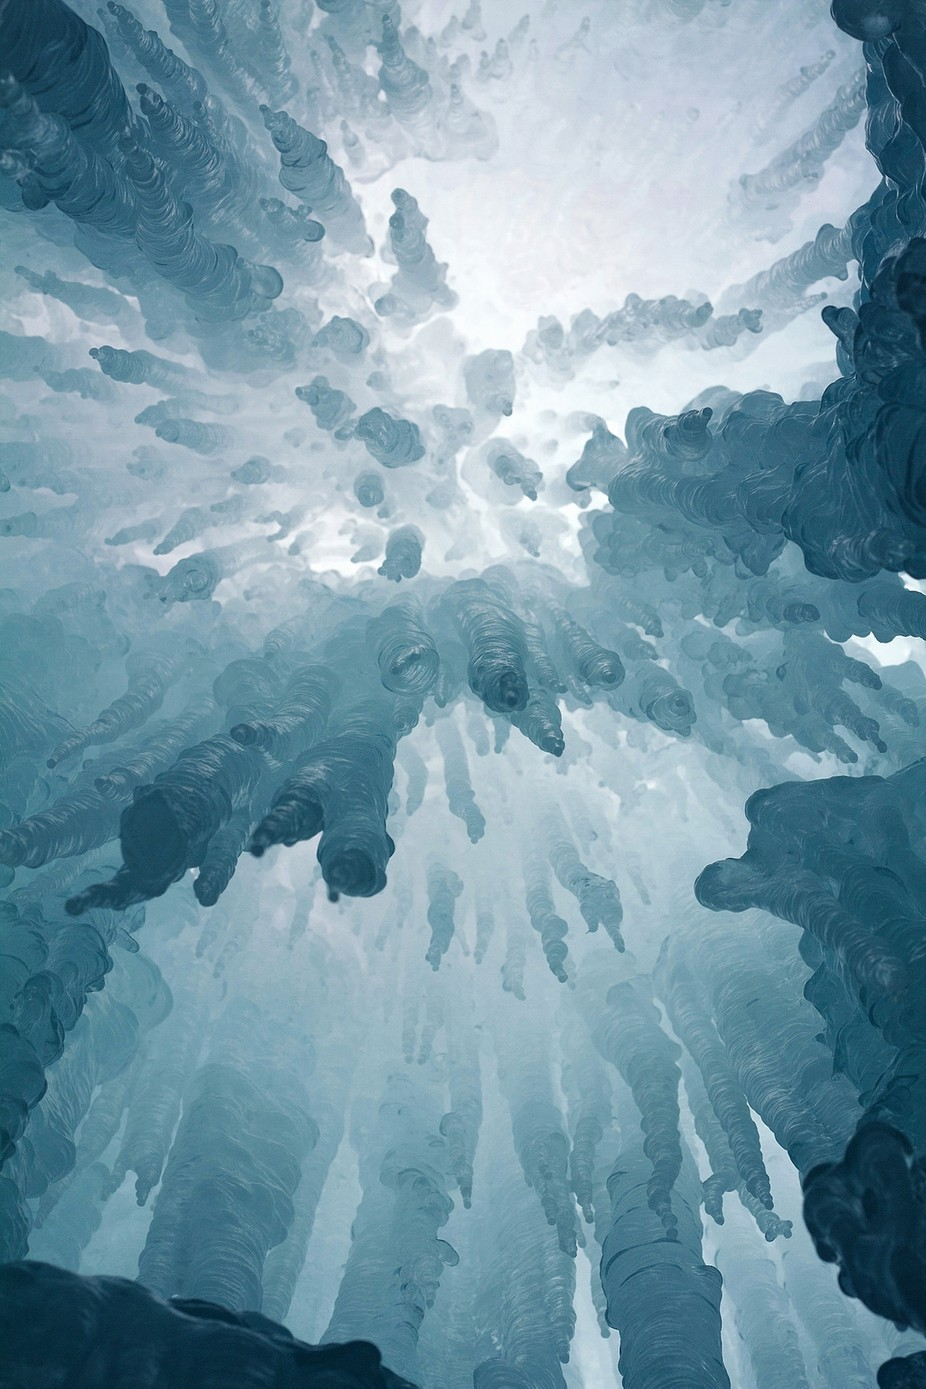 Ice Ceiling  by LelaKieler - Epic Abstractions Photo Contest